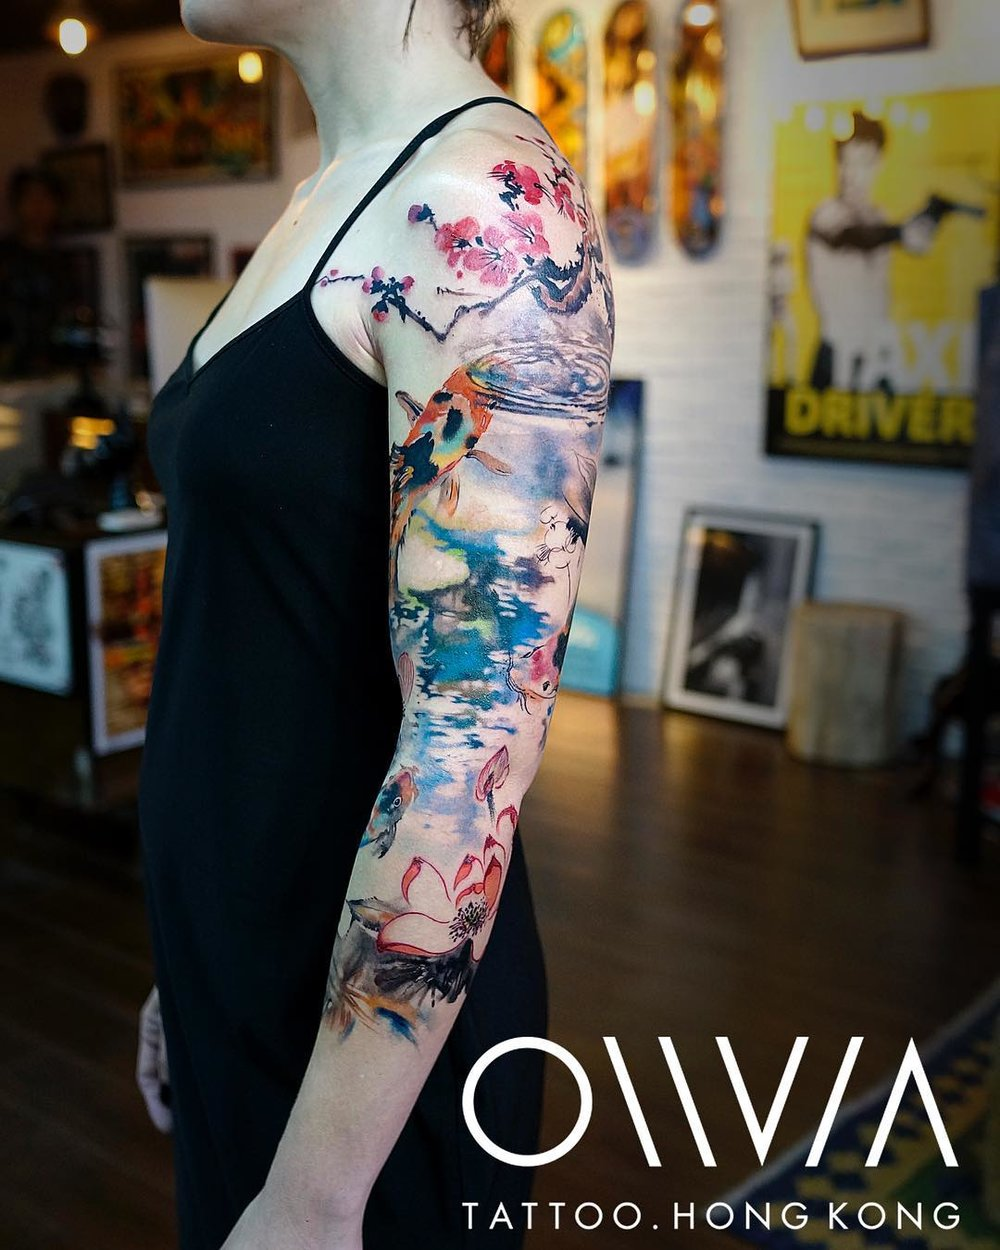 2018-fridays-tattoo-hong-kong-olivia-koi-sleeve-2.jpg